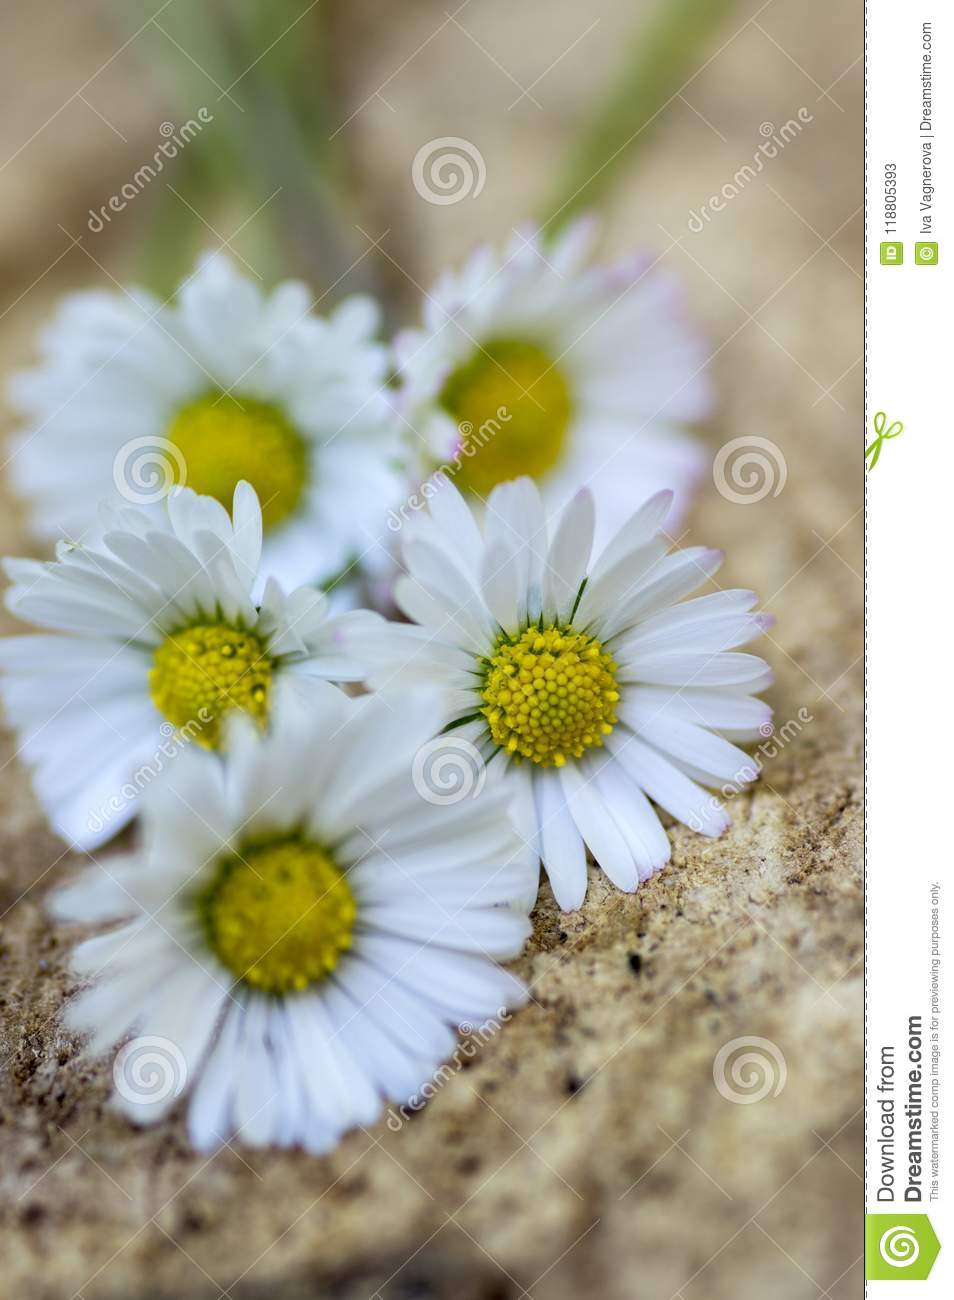 Amazing Daisies Bellis Perennis Flower Heads On Wooden Table